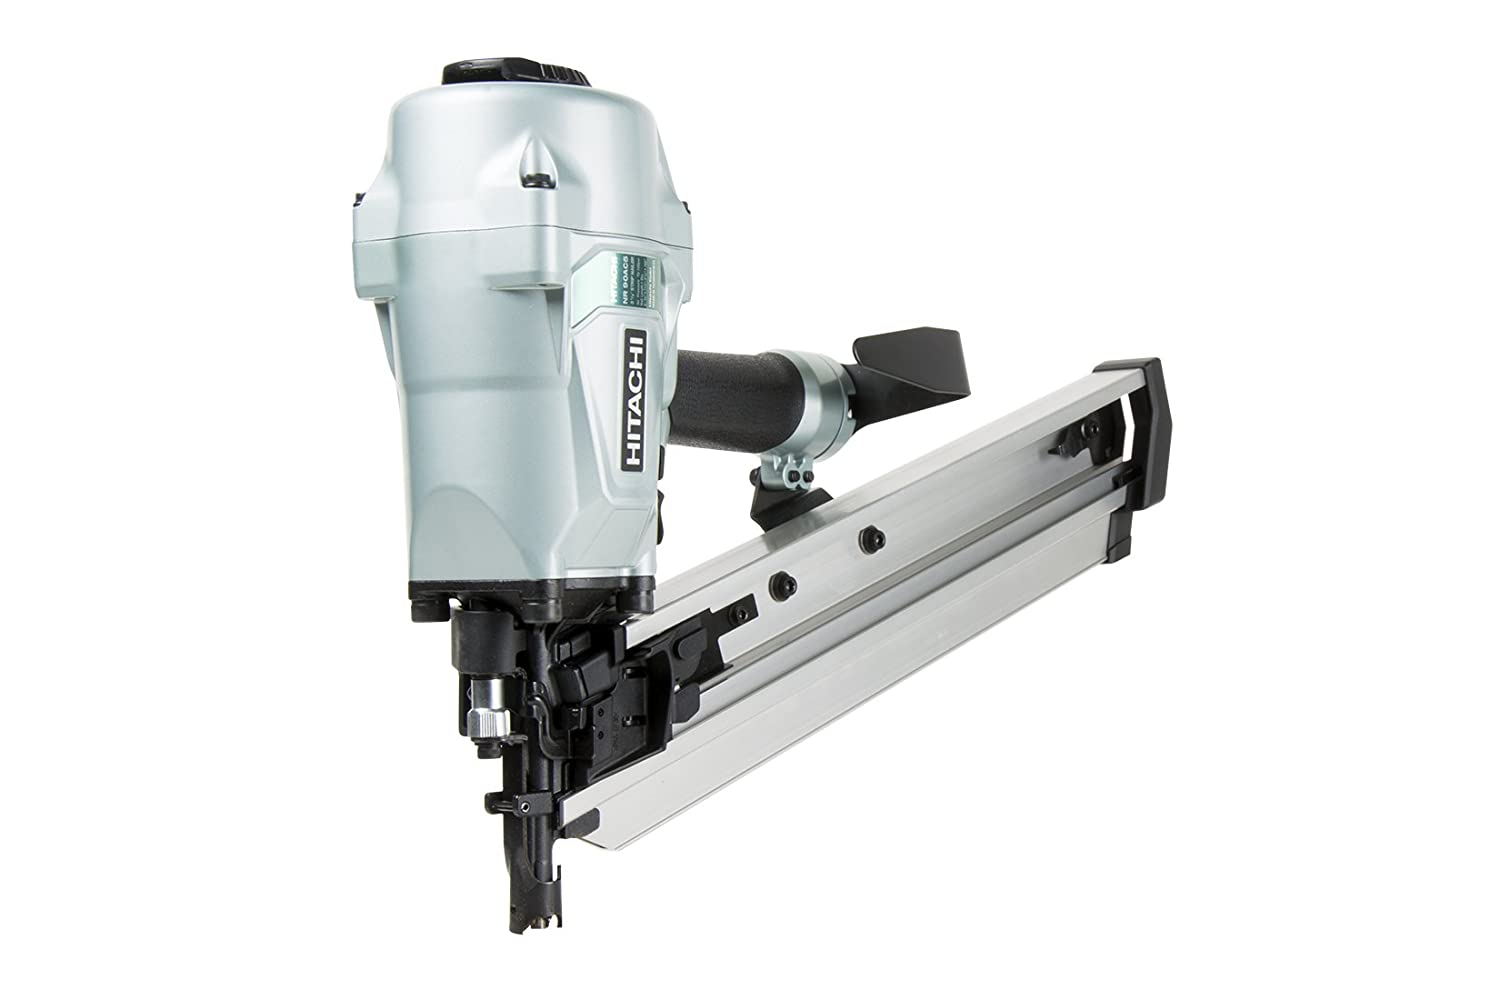 Hitachi NR90AC5 Framing Nailer for LVL 2 3 8 to 3 1 2 Plastic Collated Nails 0.162 Full Head 21 Degrees